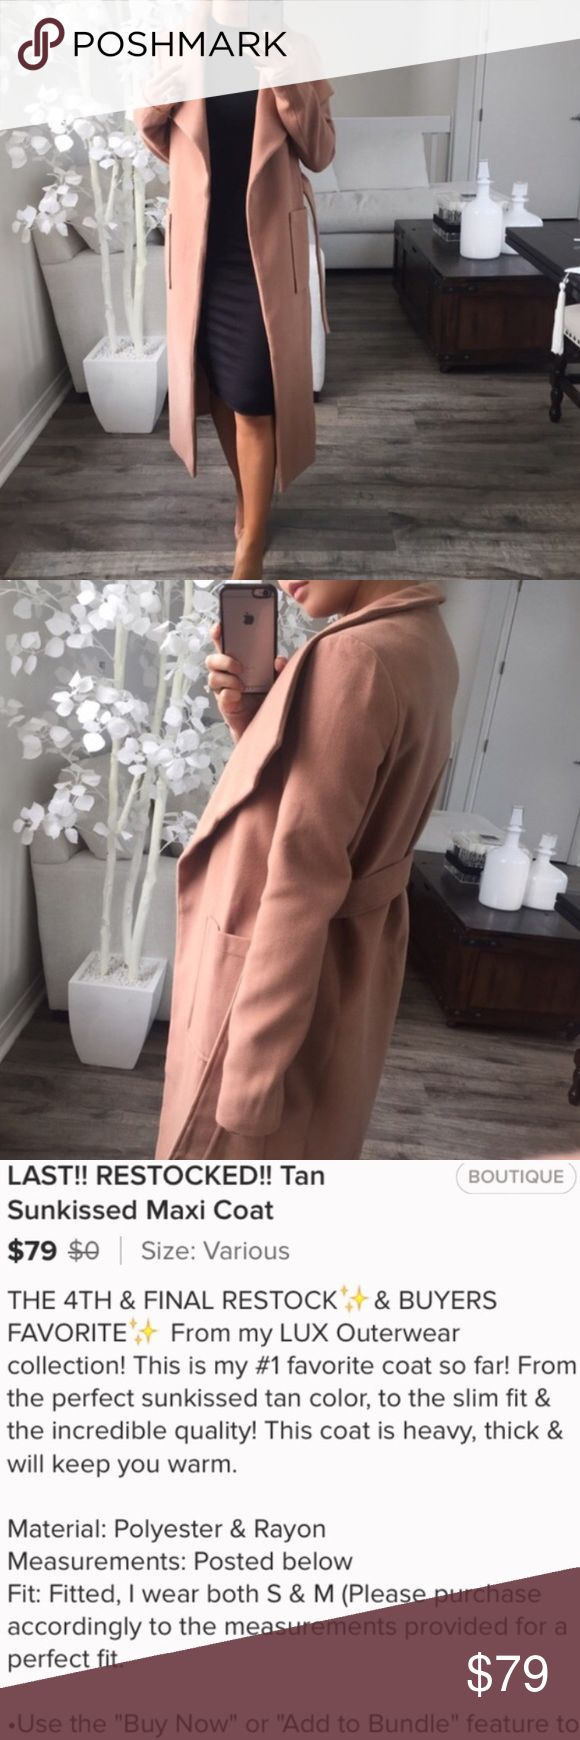 Tan Sunkissed Maxi Coat NWT! From @itselaine's closet. (Photos are hers) I loved this coat the second I saw it & had to have it. I live in Miami & the temperature hasn't dropped low enough for me to wear 😕 I'd rather it go to good use than just sit in my closet. ekAttire Jackets & Coats